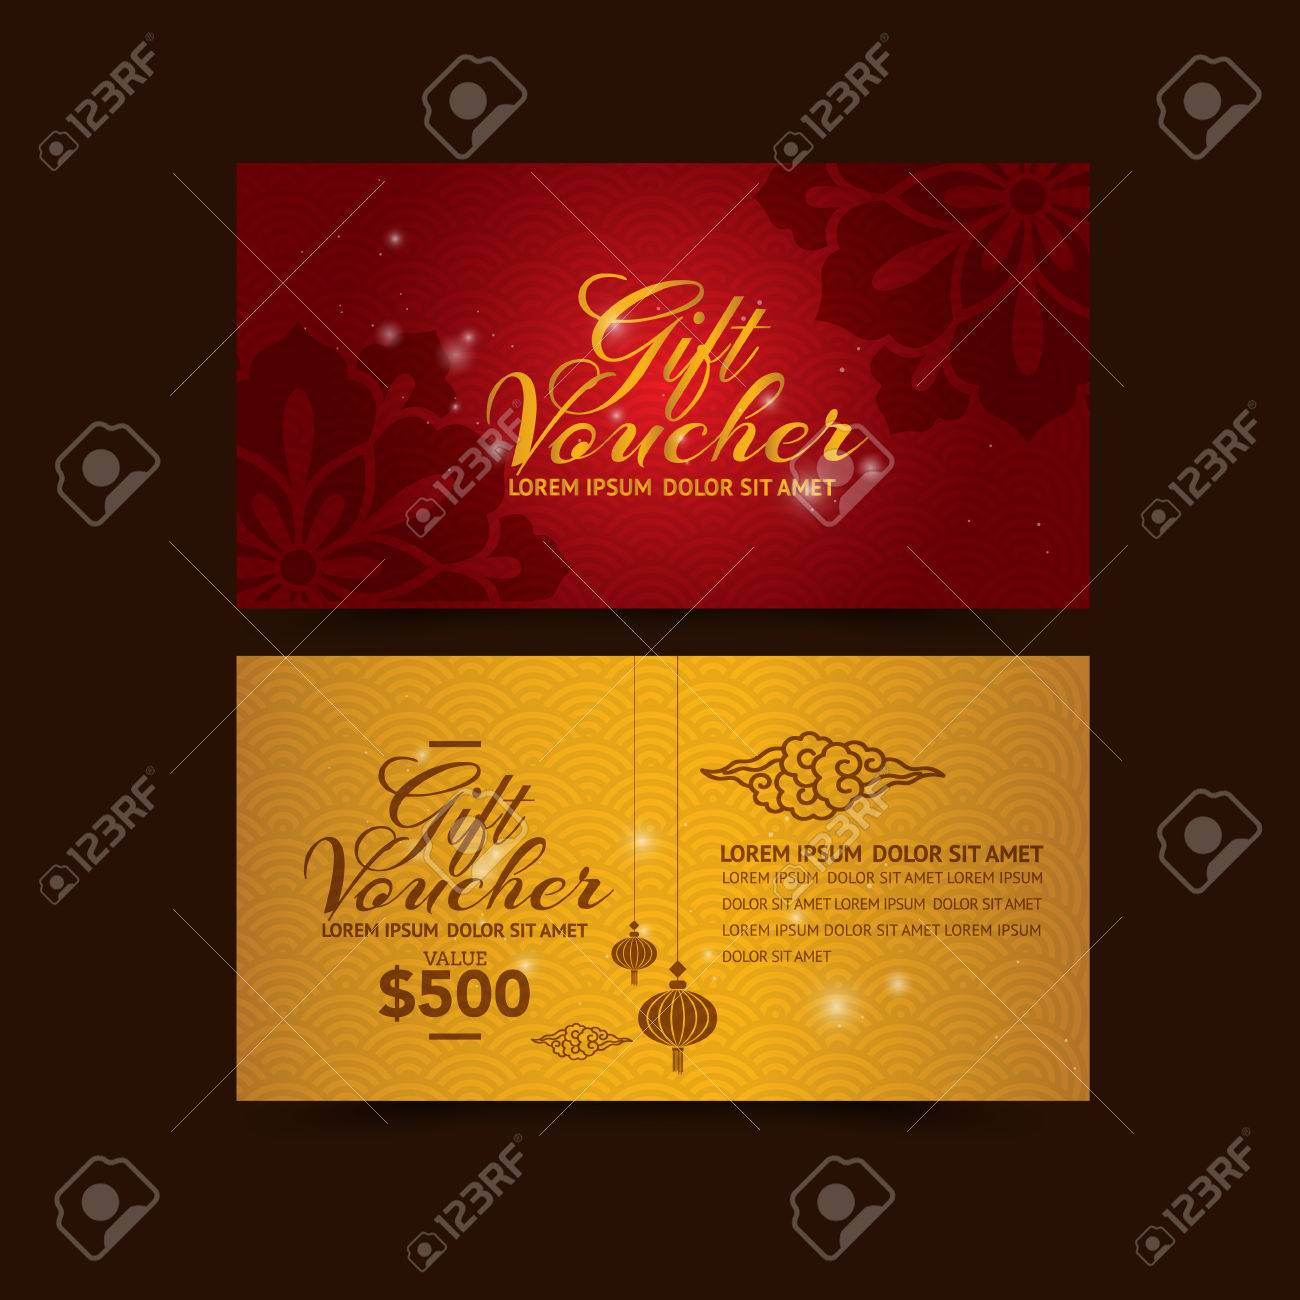 Chinese new year gift voucher design template royalty free chinese new year gift voucher design template stock vector 50570850 yelopaper Gallery